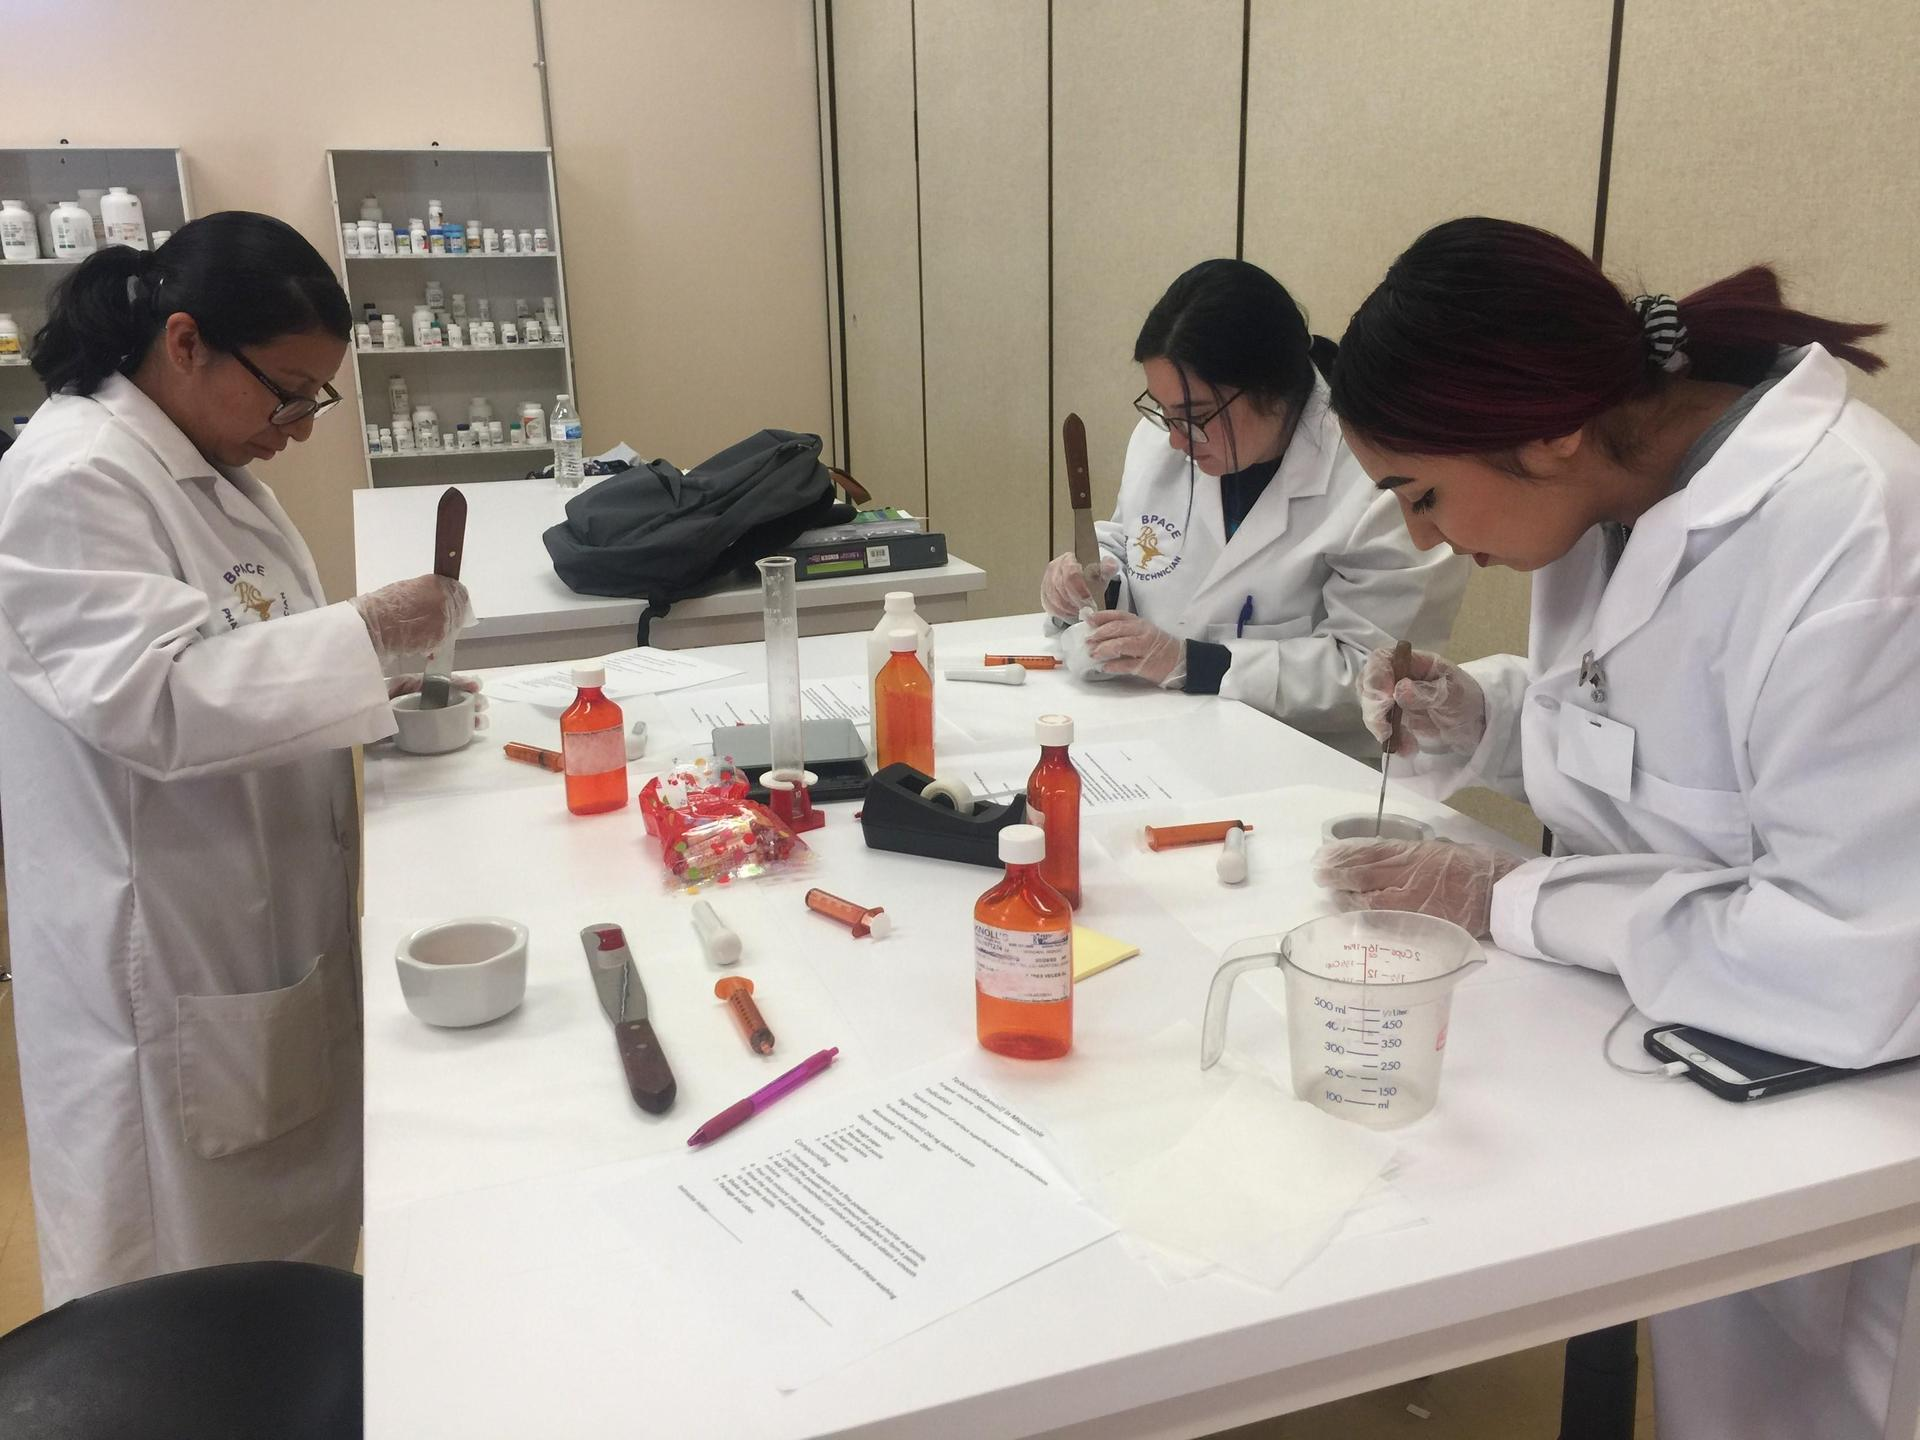 Pharmacy Tech. Students Practice Counting Medication